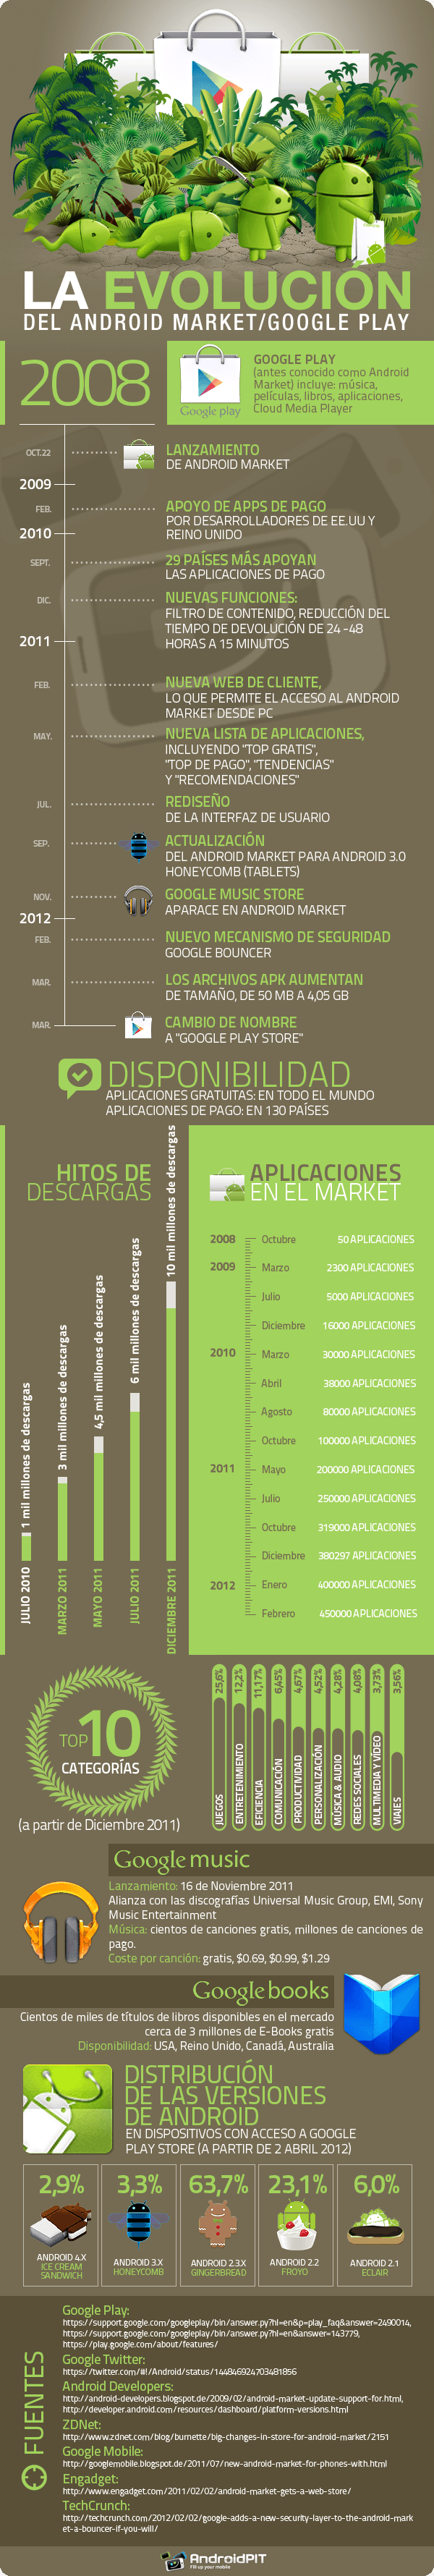 evolucion android market google play 2